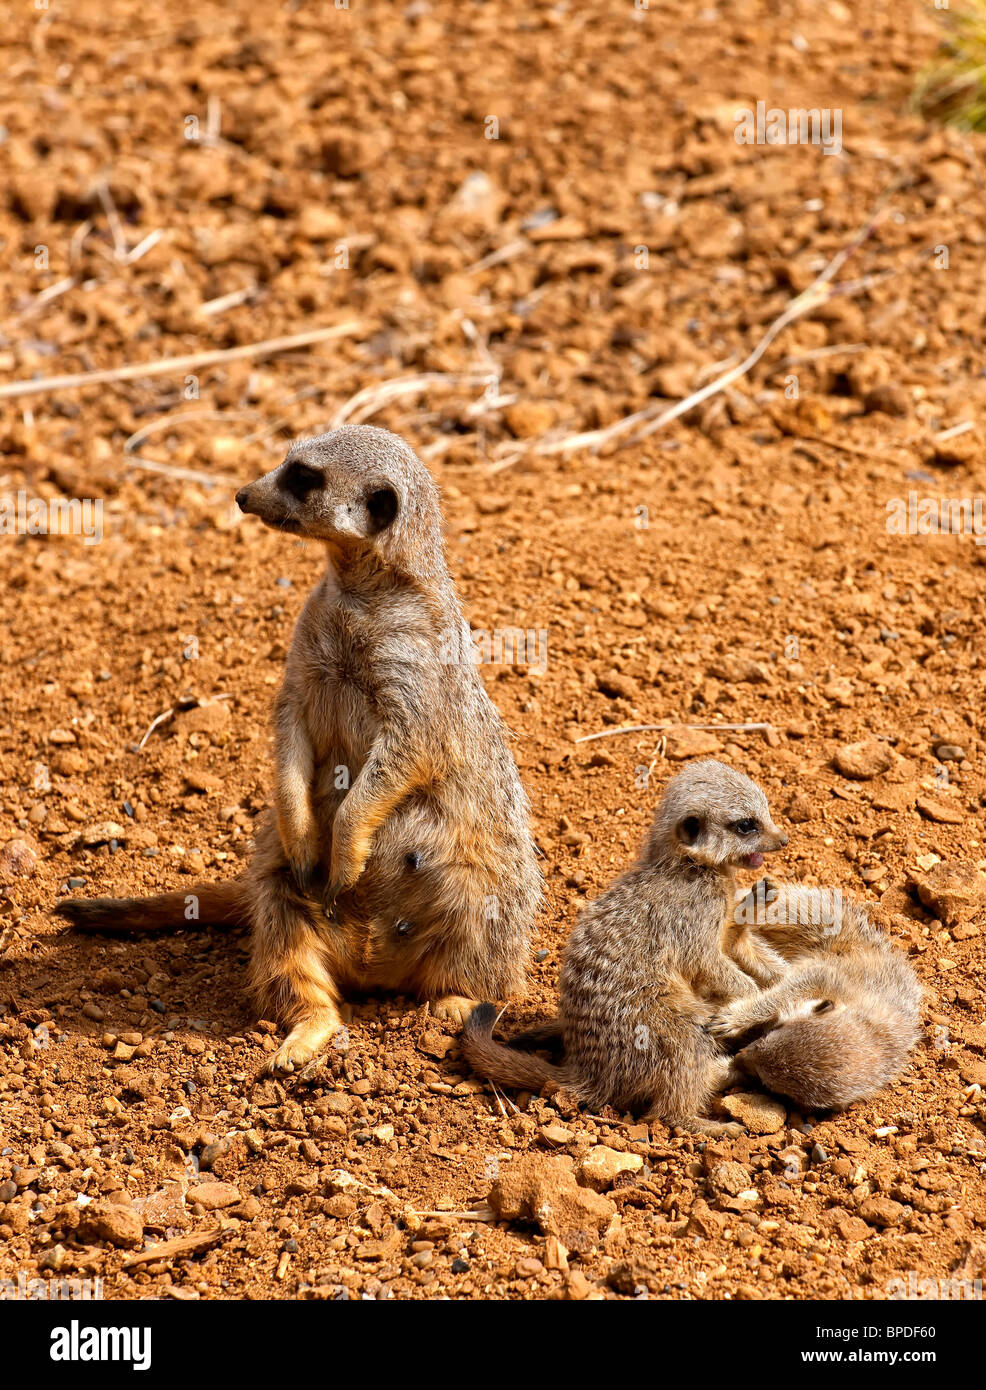 A Meerkat also known as the Suricate (Suricata suricatta) sitting on it's haunches whilst it's babies play nearby Stock Photo